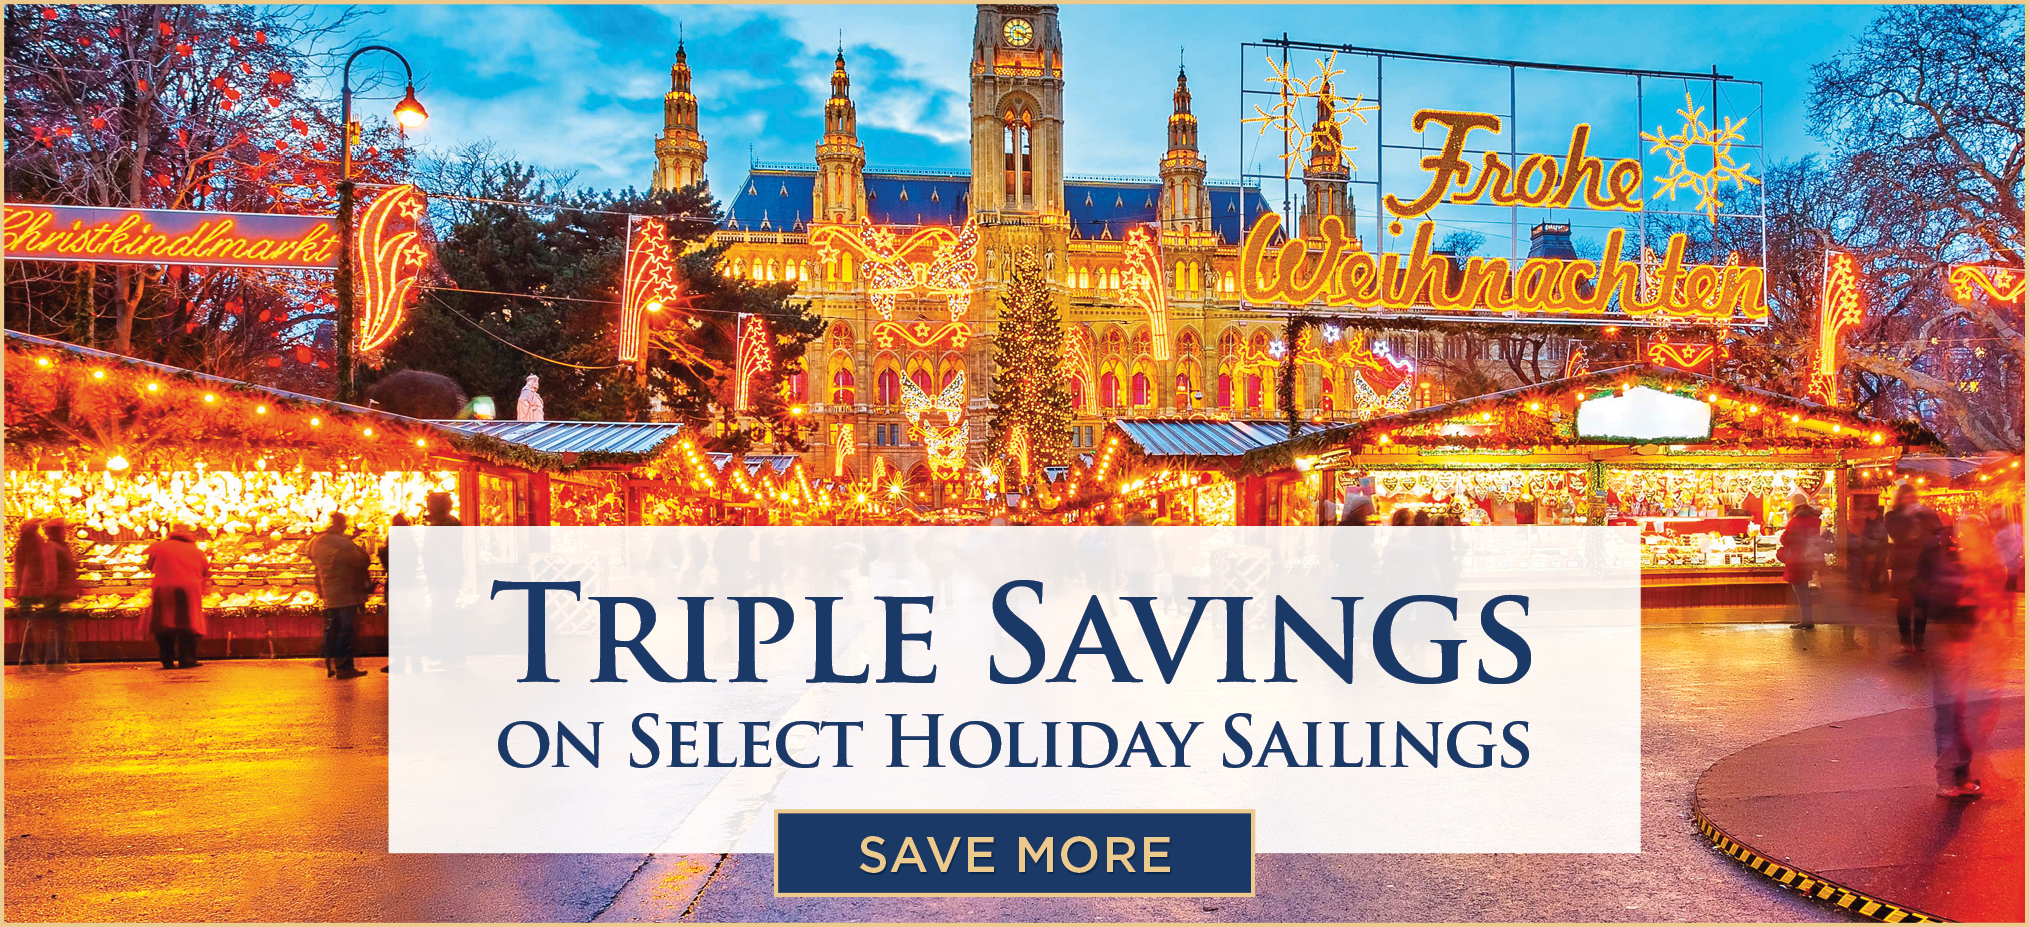 2020 HOLIDAY TRIPLE SAVINGS_974x445_v1